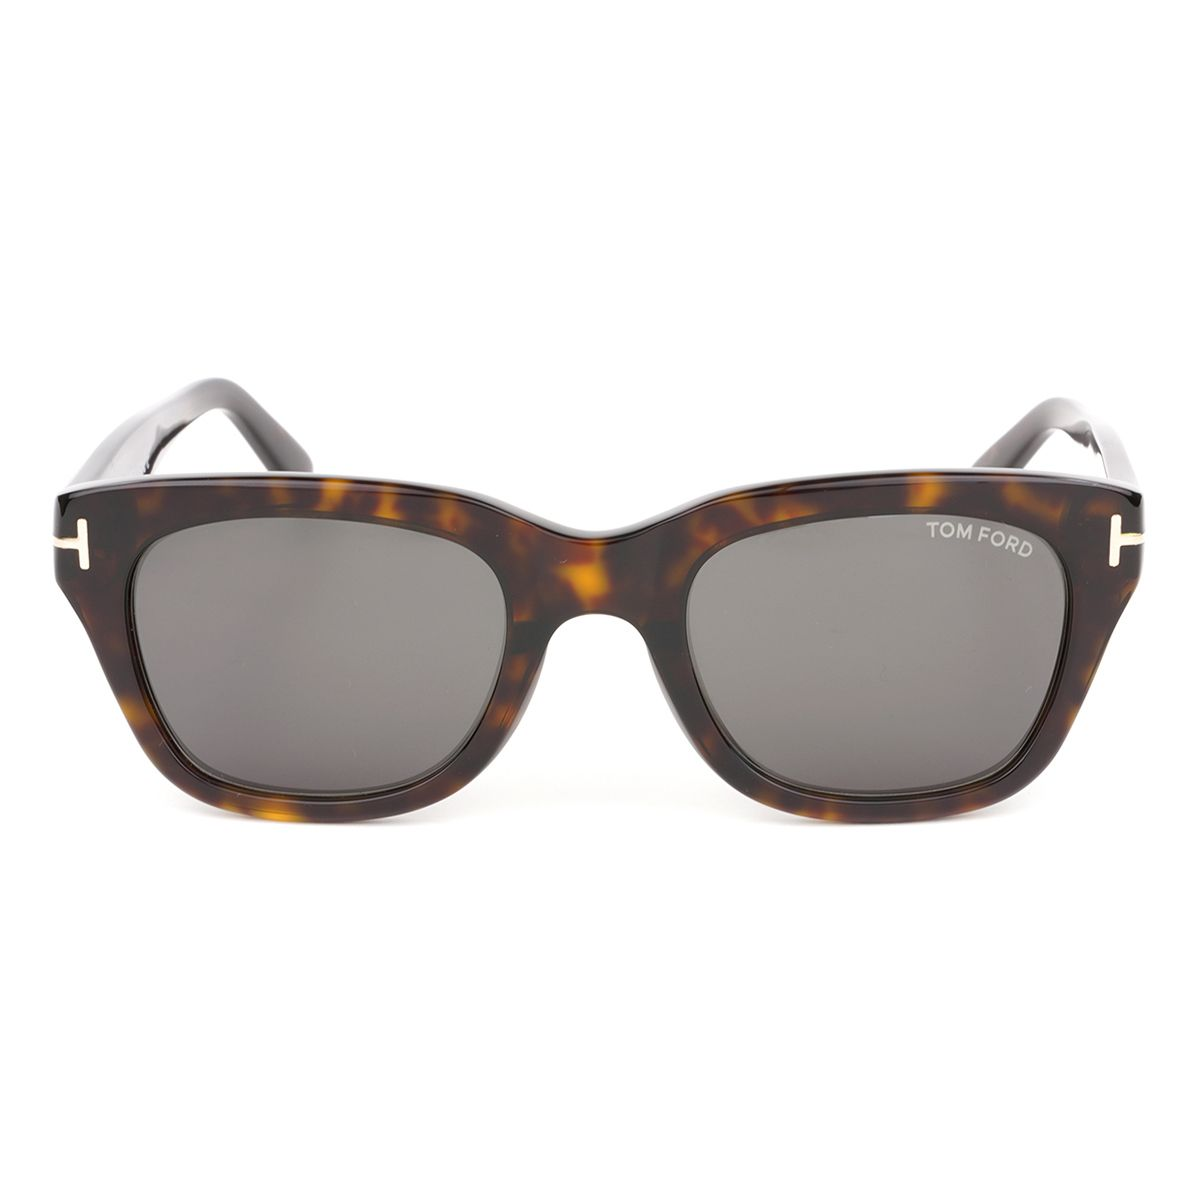 TOM FORD SUNGLASSES/232FT00B80 / TORTOISE(BLACK)